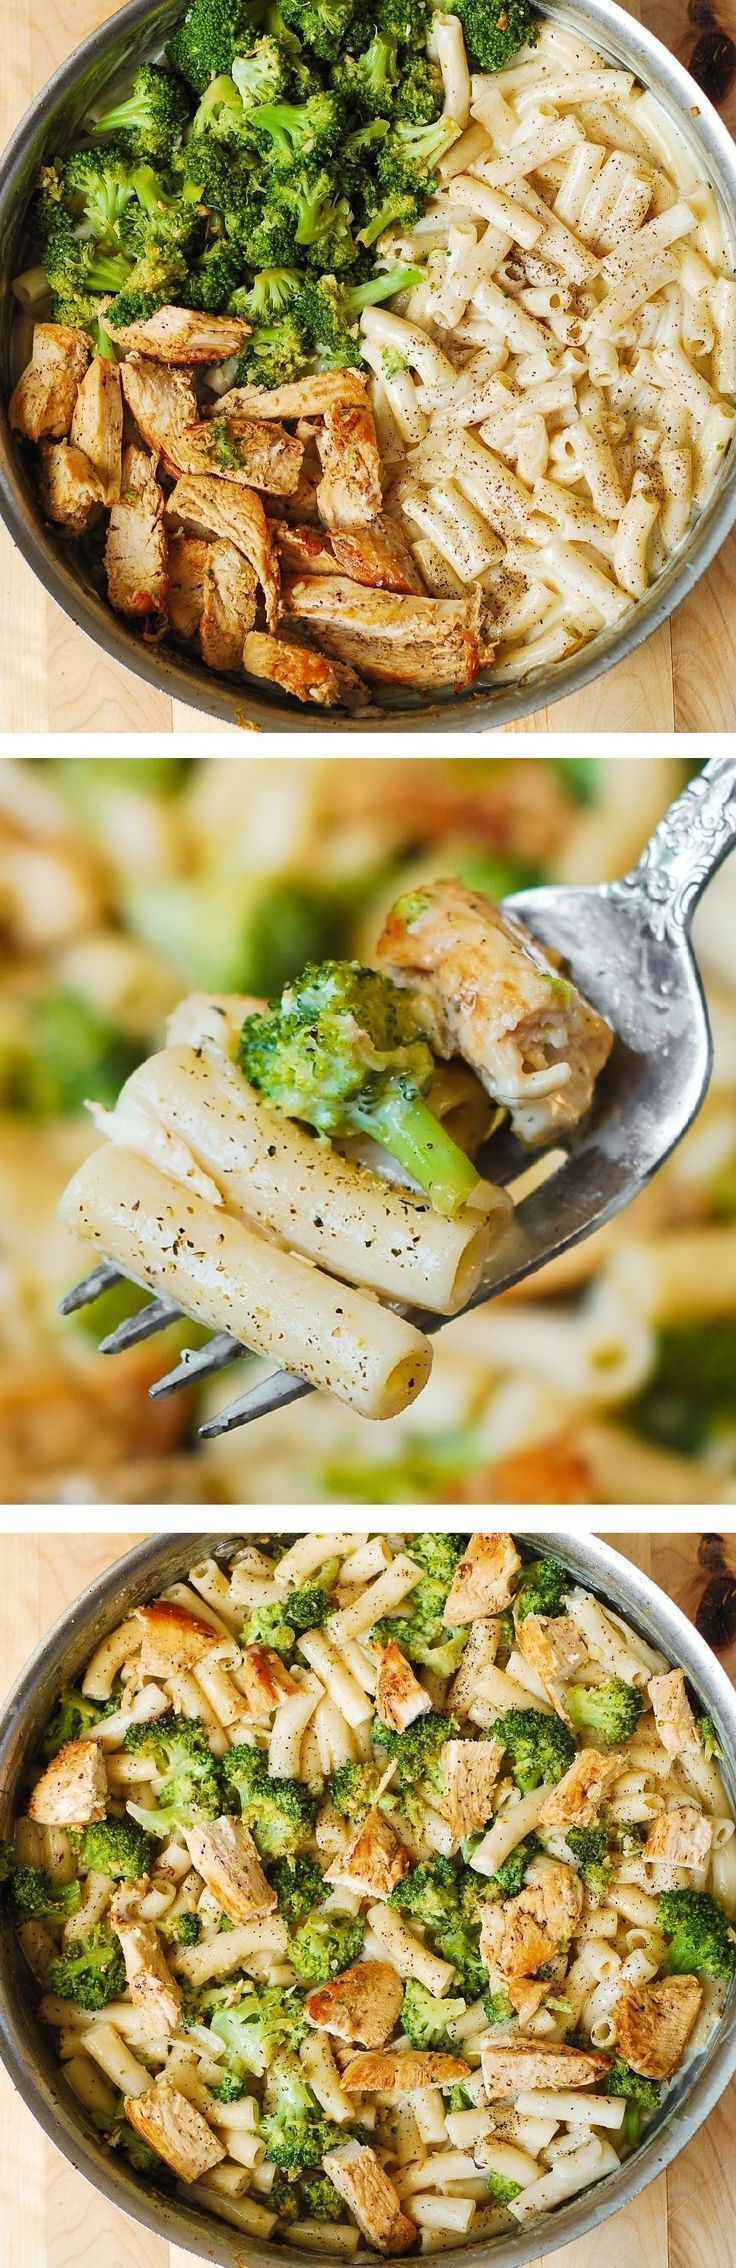 Chicken Broccoli Alfredo Penne Pasta - with homemade white cheese cream sauce. This will warm your soul on cold winter nights!